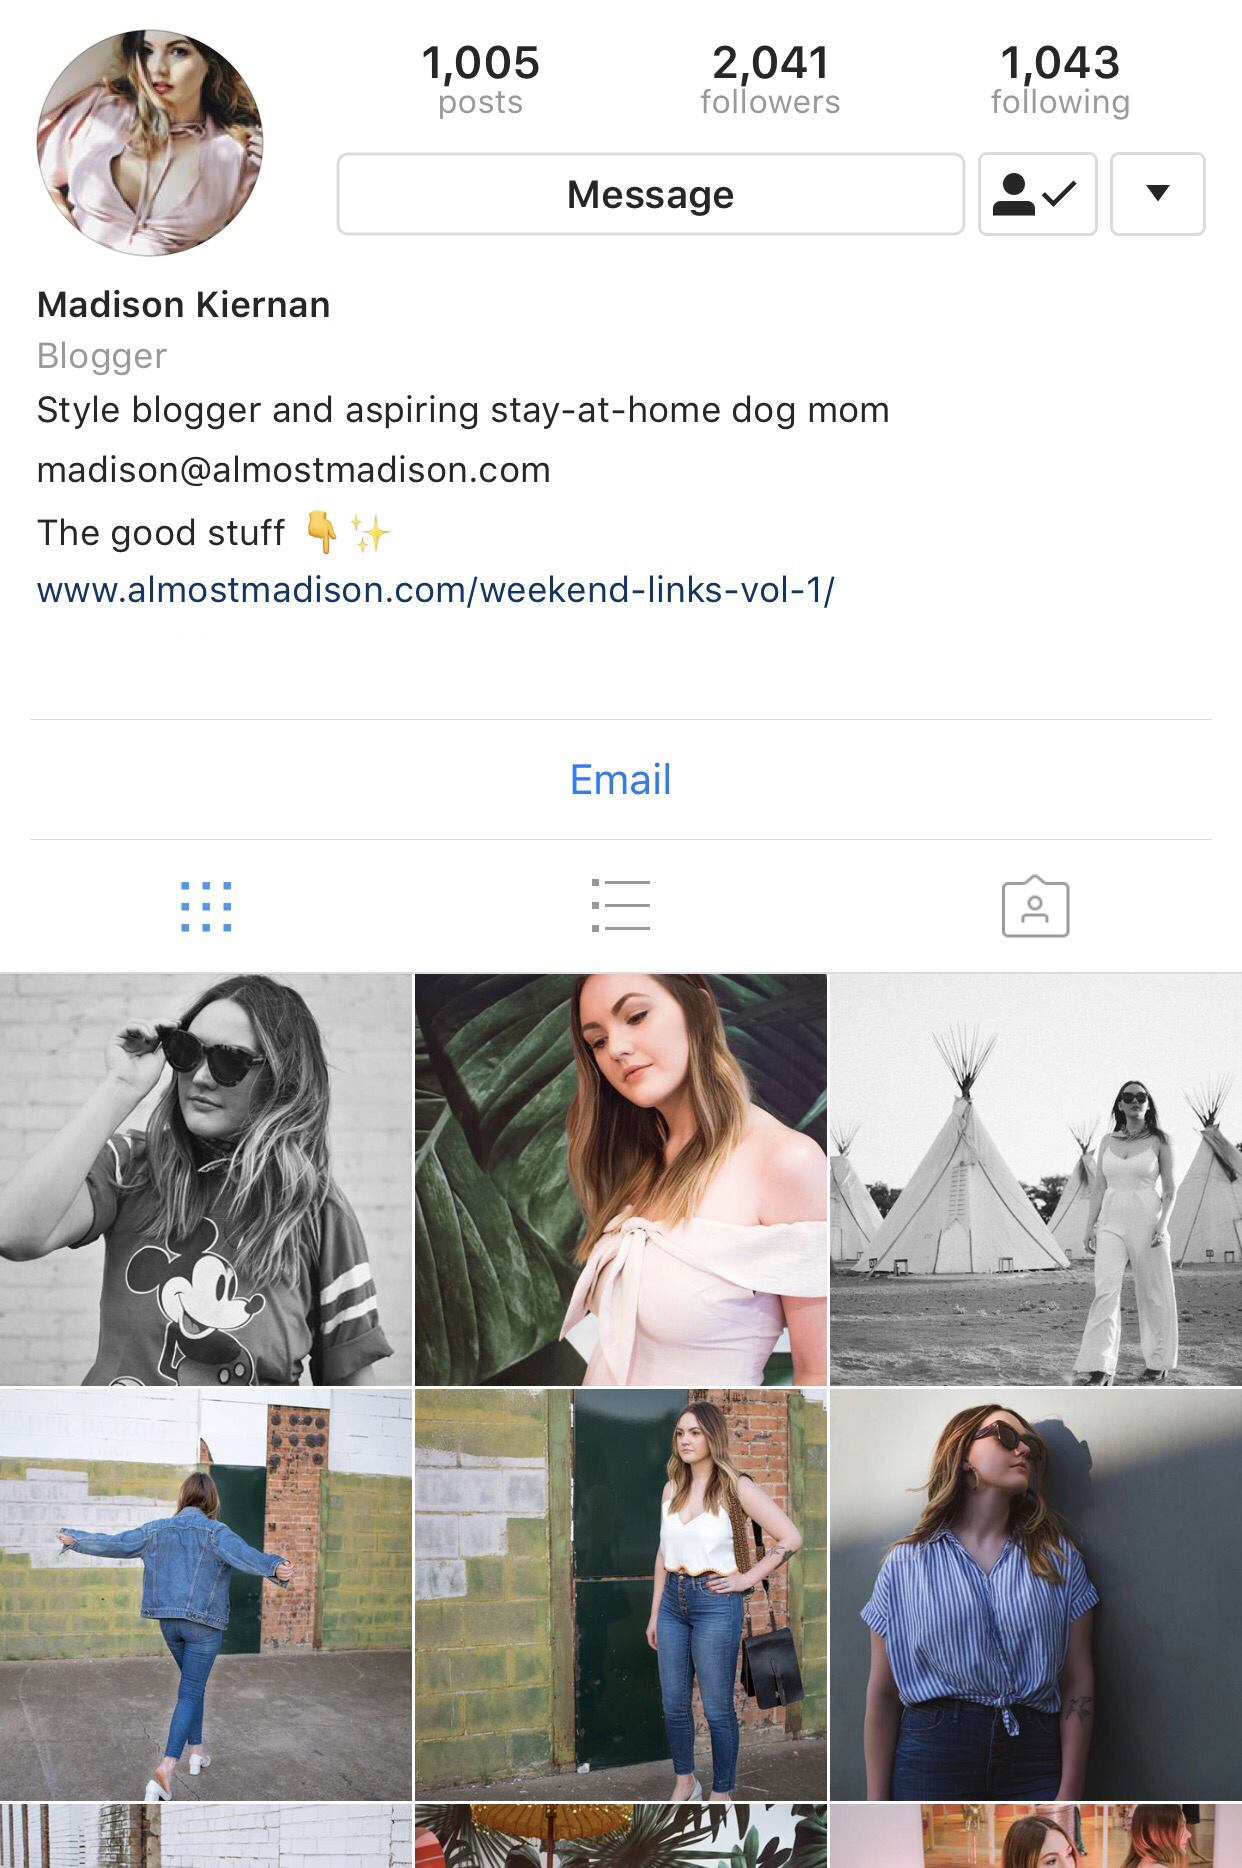 5 Fun Instagram Profiles to Follow / 01 – Edits by Emily